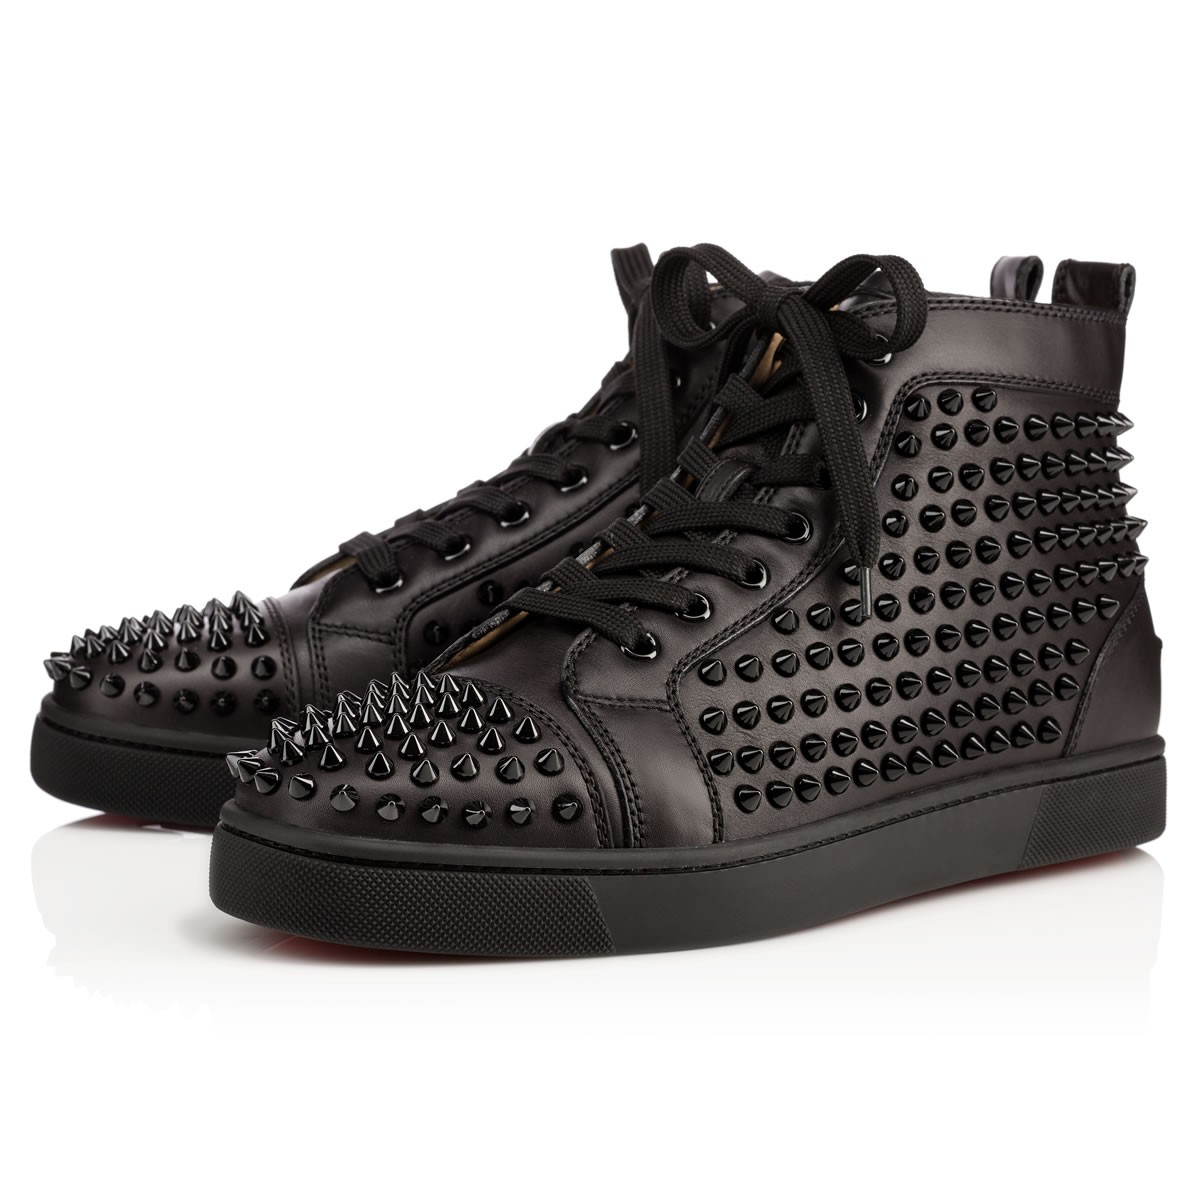 low priced 78b7f 4ace8 Louis Spikes Black/Black/Bk Leather - Men Shoes - Christian Louboutin